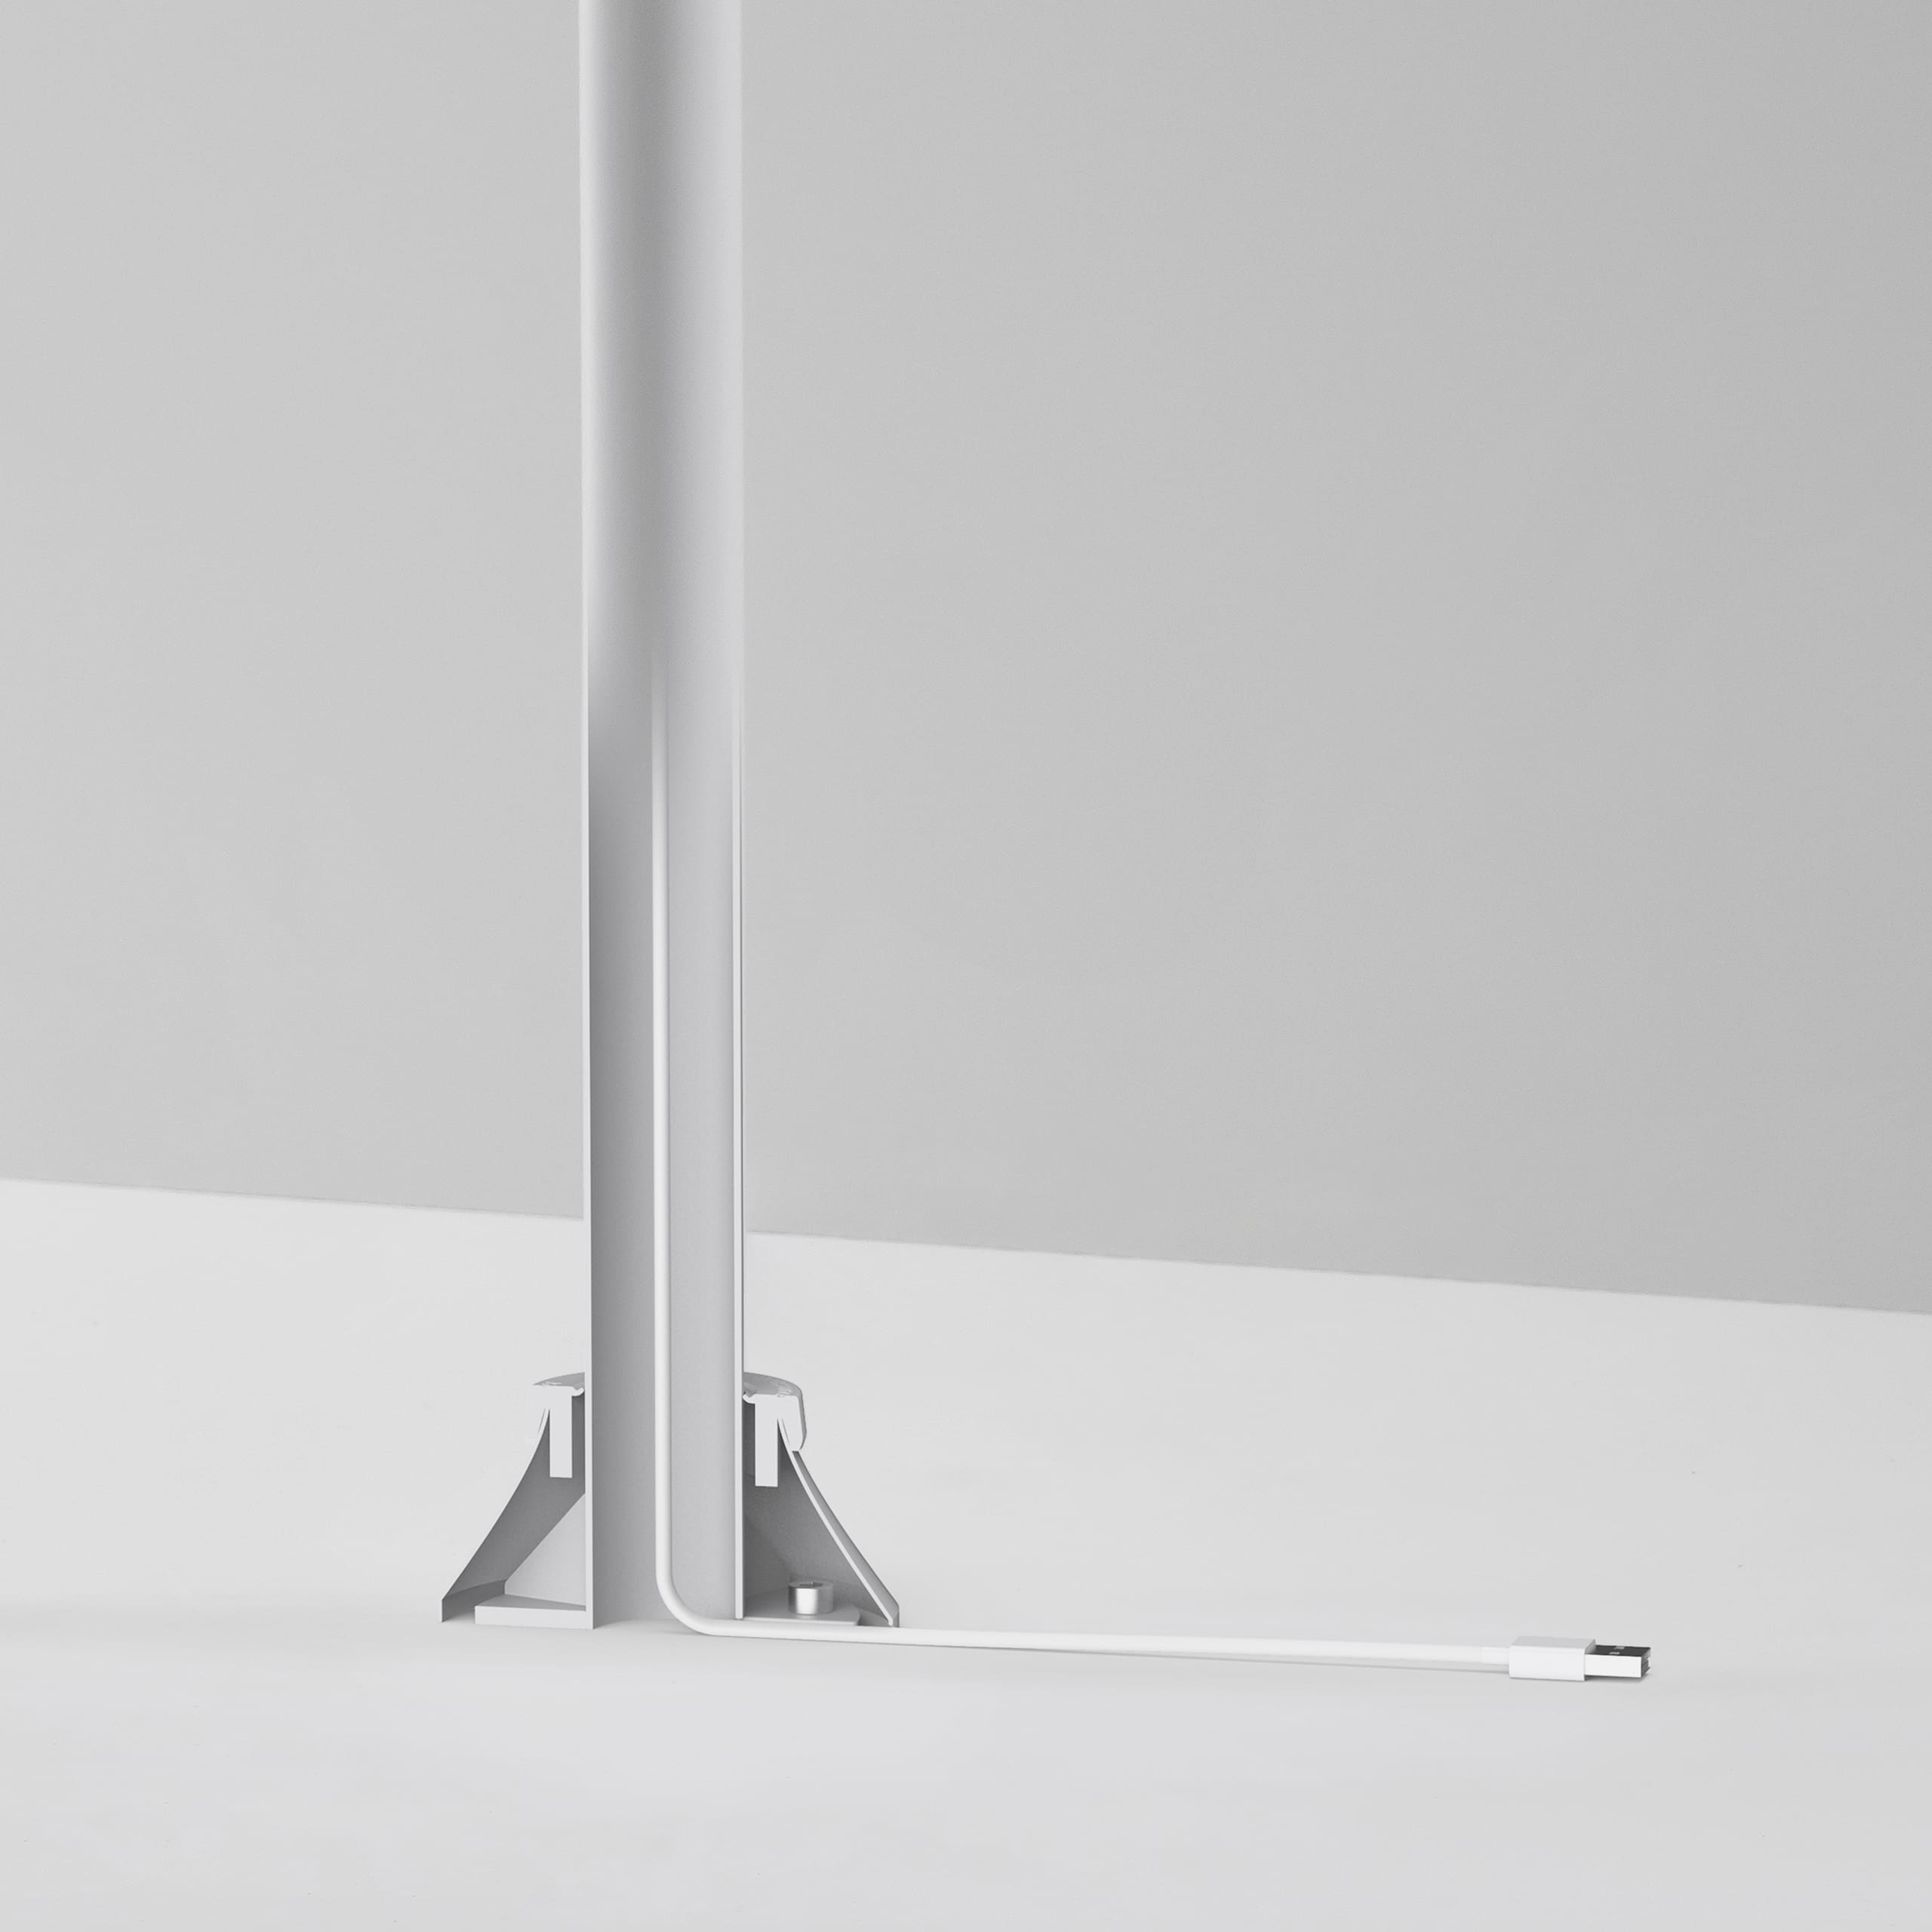 Bouncepad Slim, cables are hidden inside